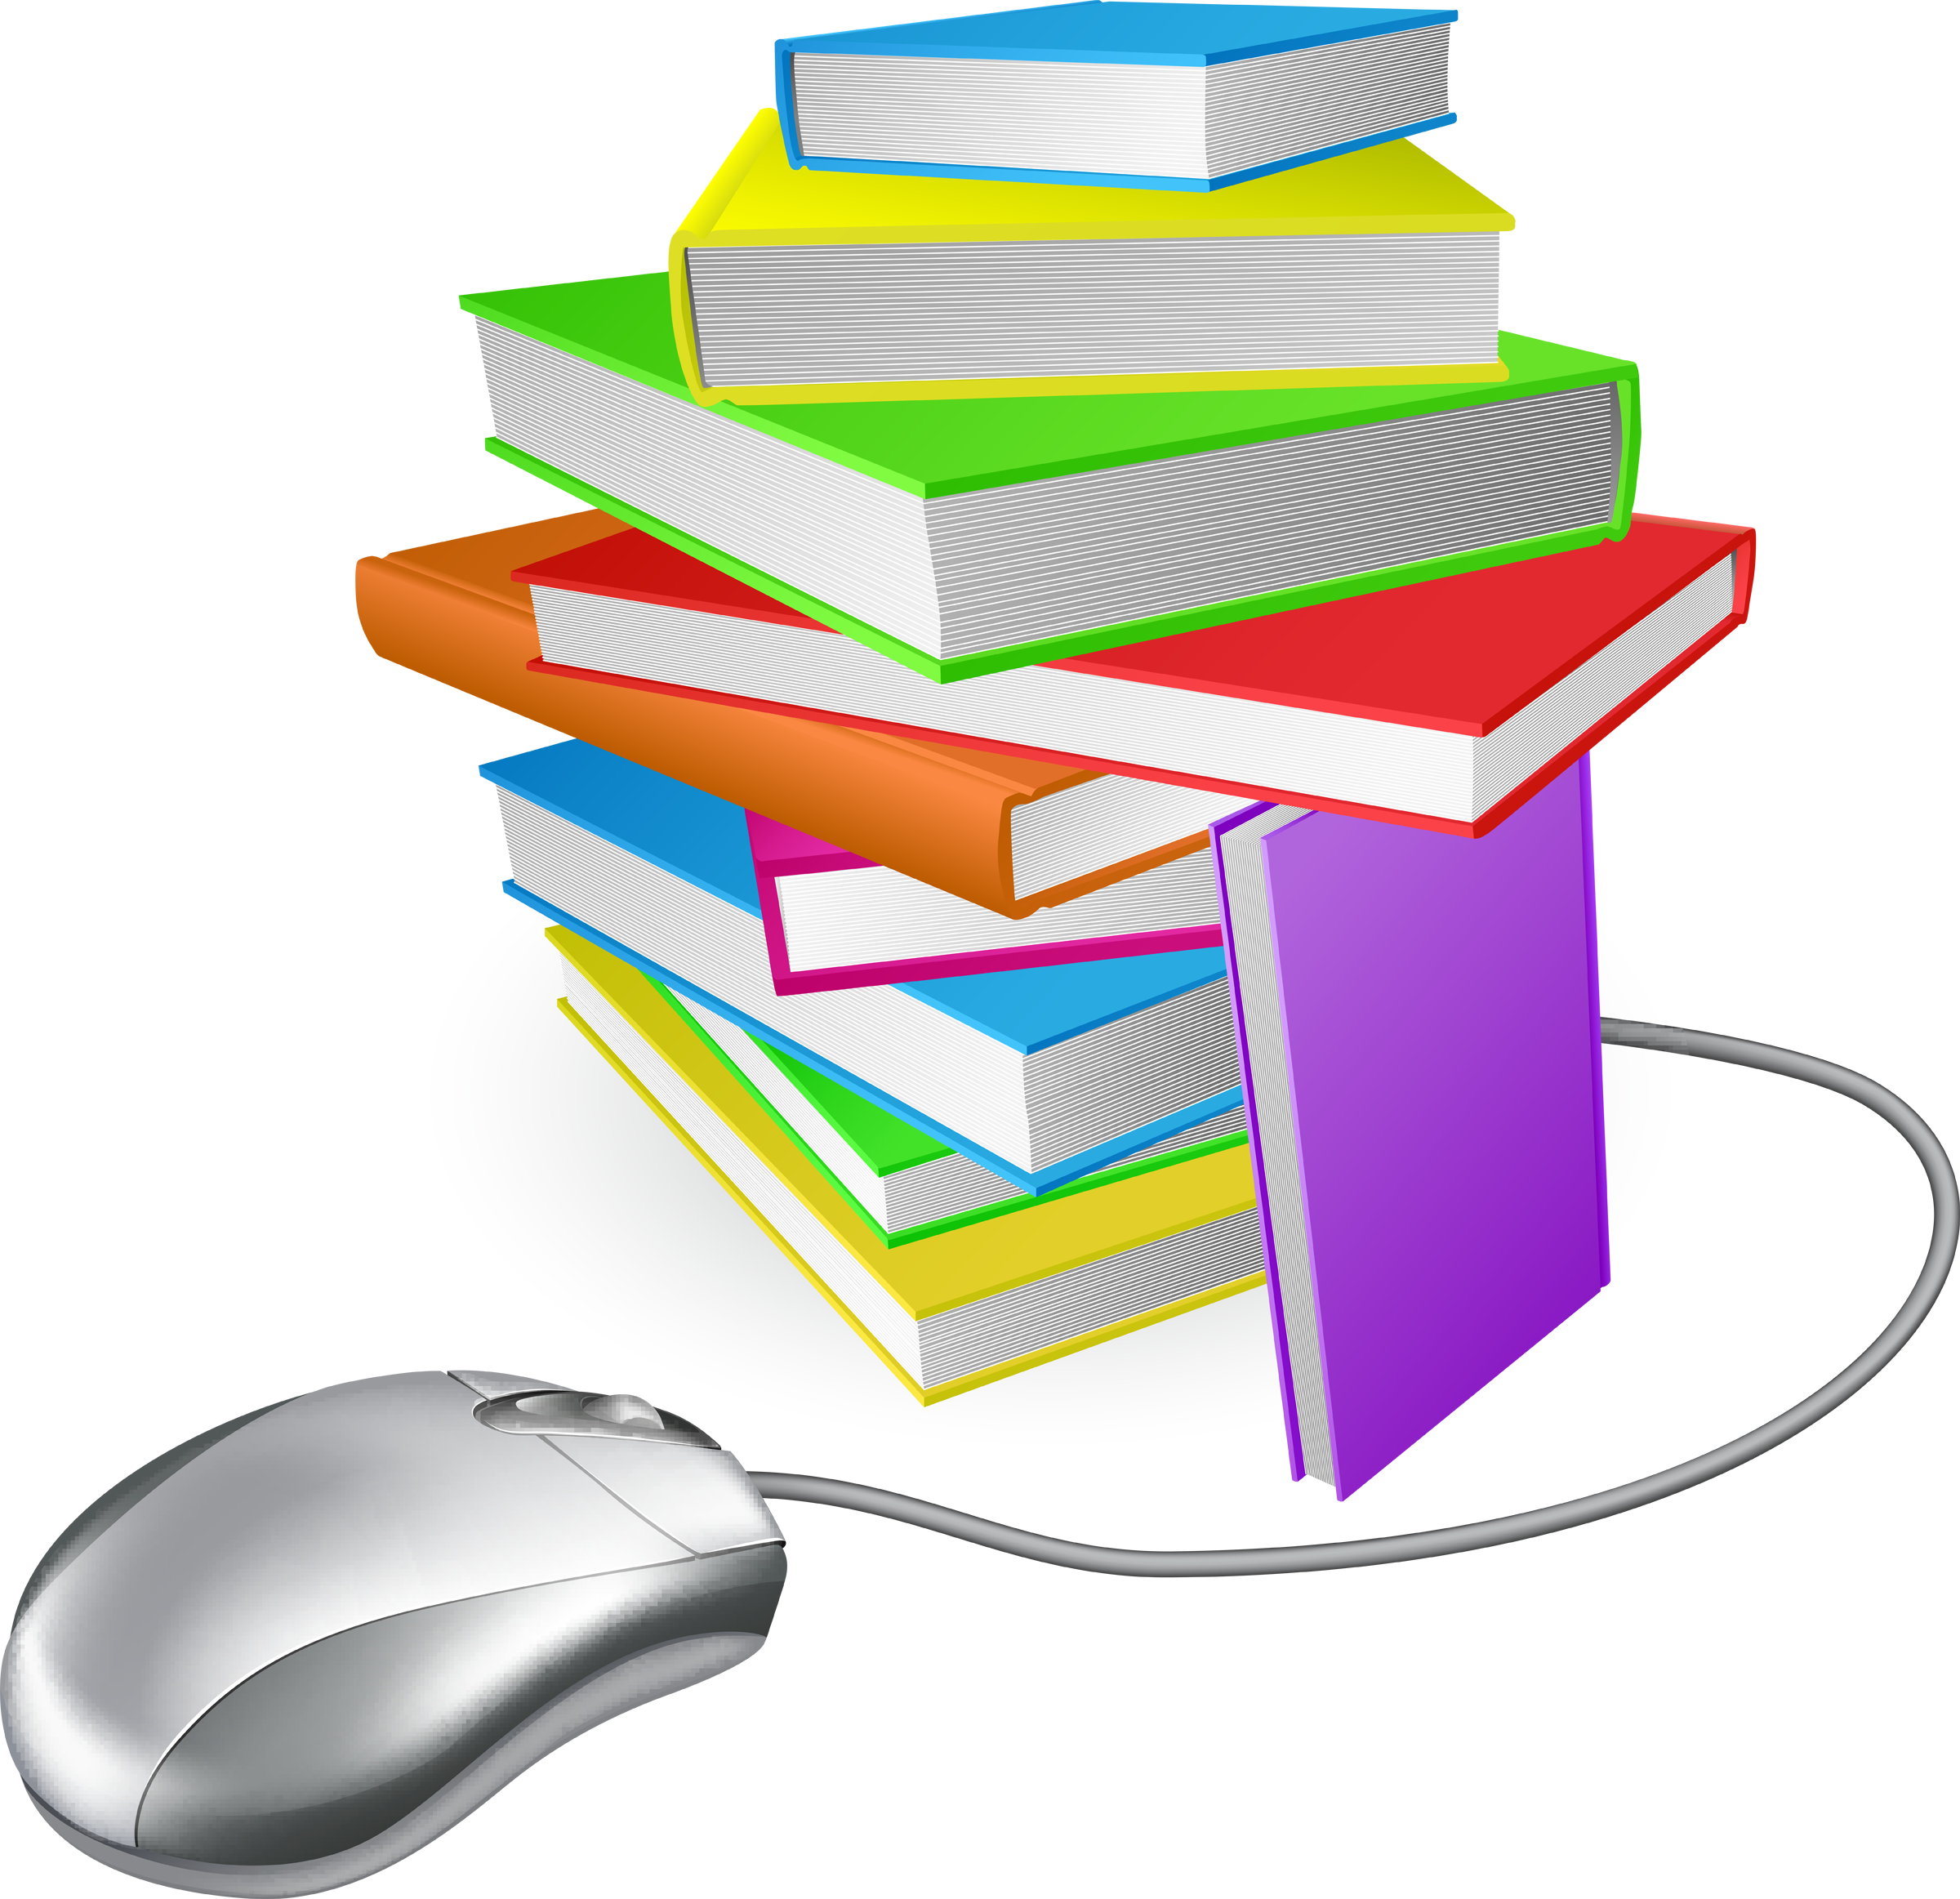 Clipart books library. Virtual notes keeping lvccld